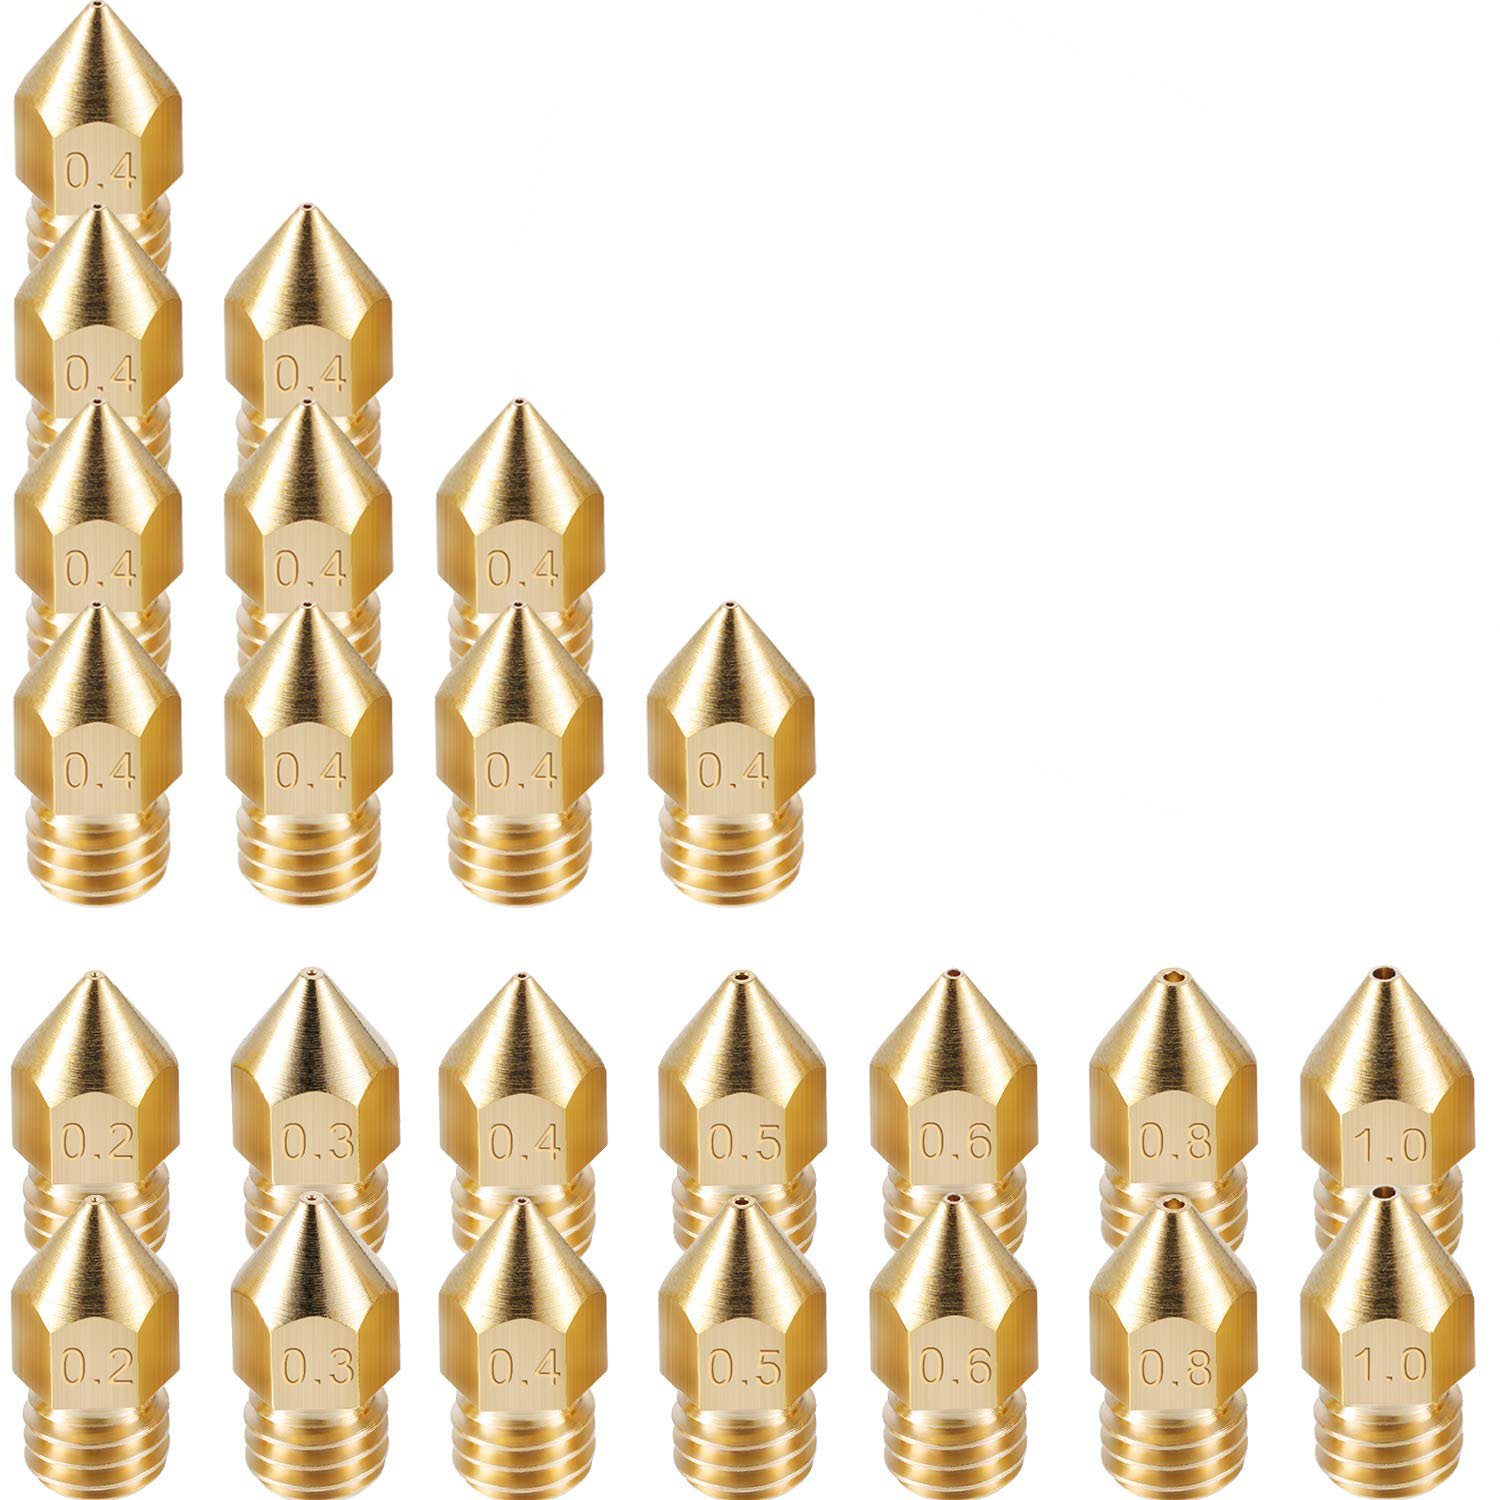 24 Pack 3D Printer Extruder Nozzles Mk8 Nozzle 7 Different Size 0.2 Mm,0.3 Mm,0.4 Mm,0.5 Mm,0.6 Mm,0.8 Mm,1.0 Mm With Clean Bo